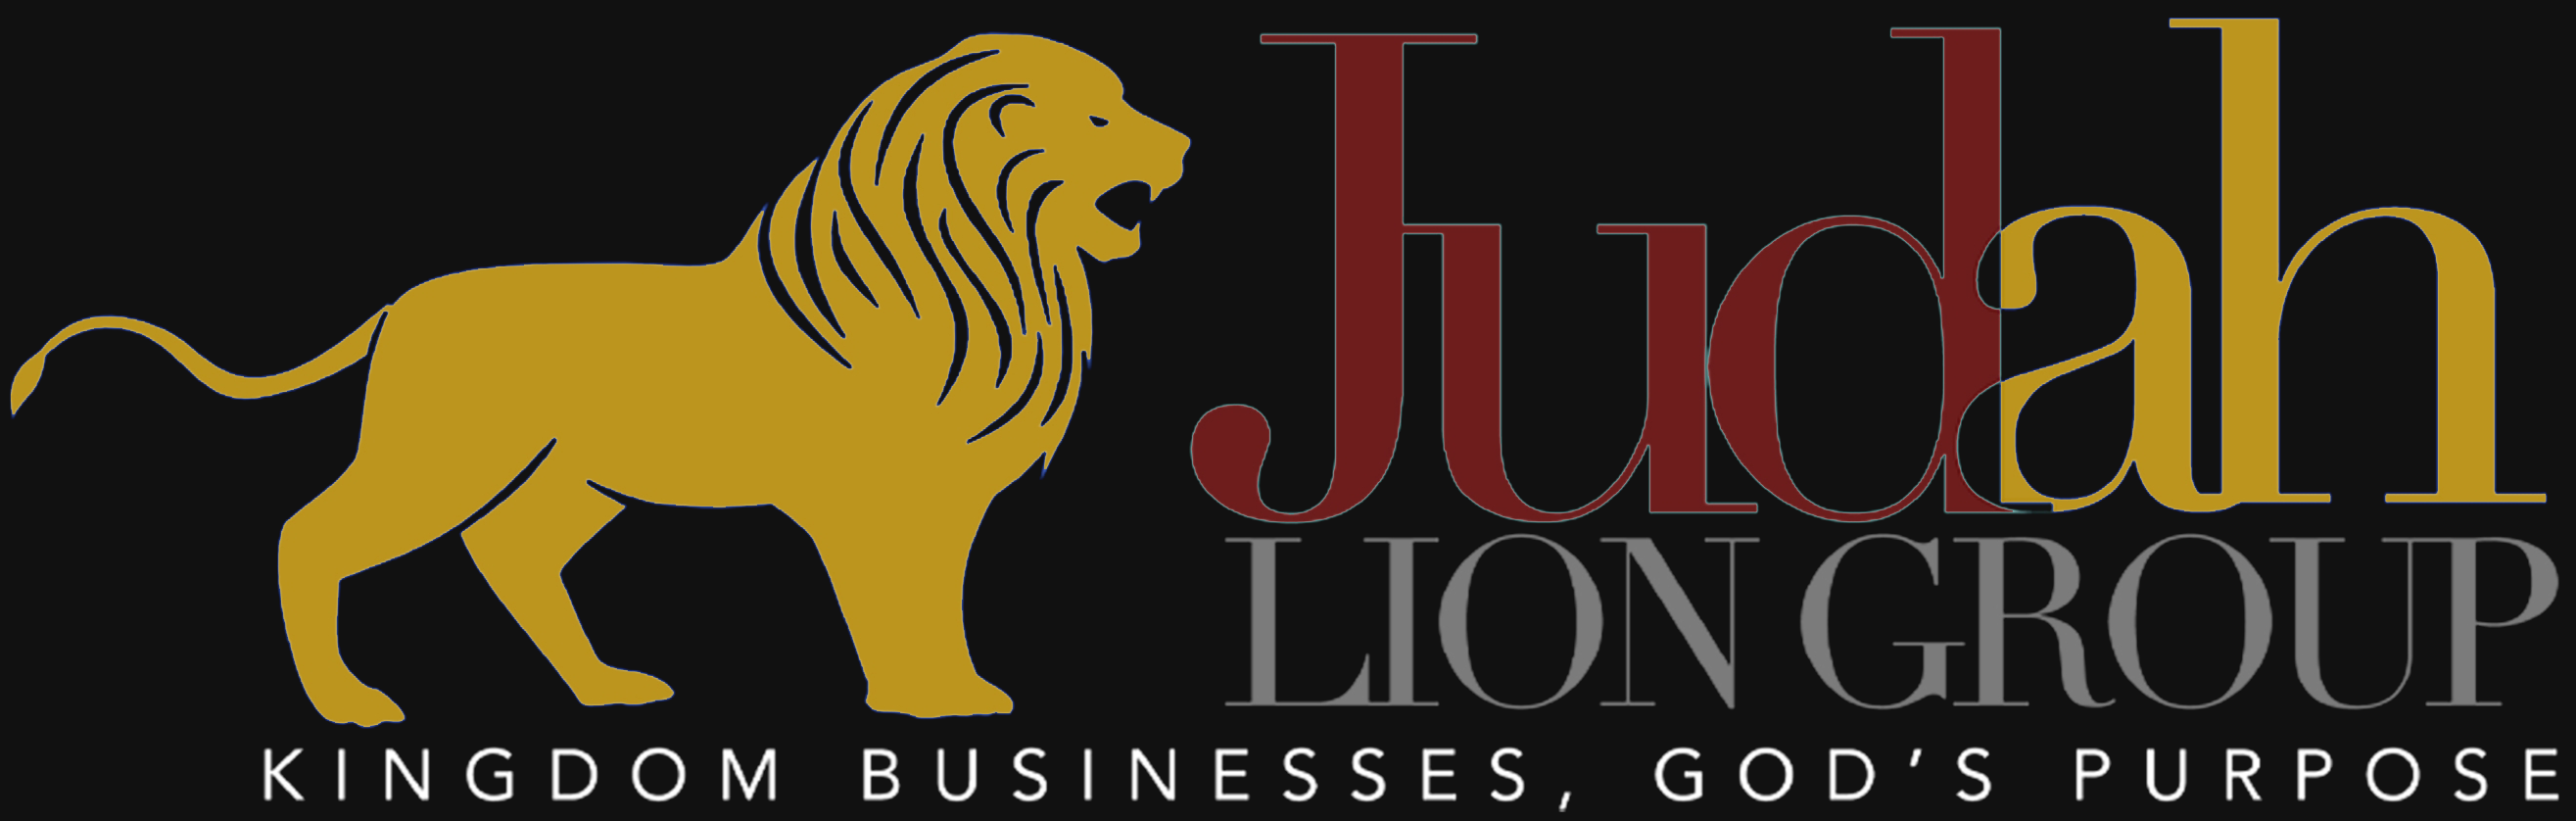 Judah Lion Group